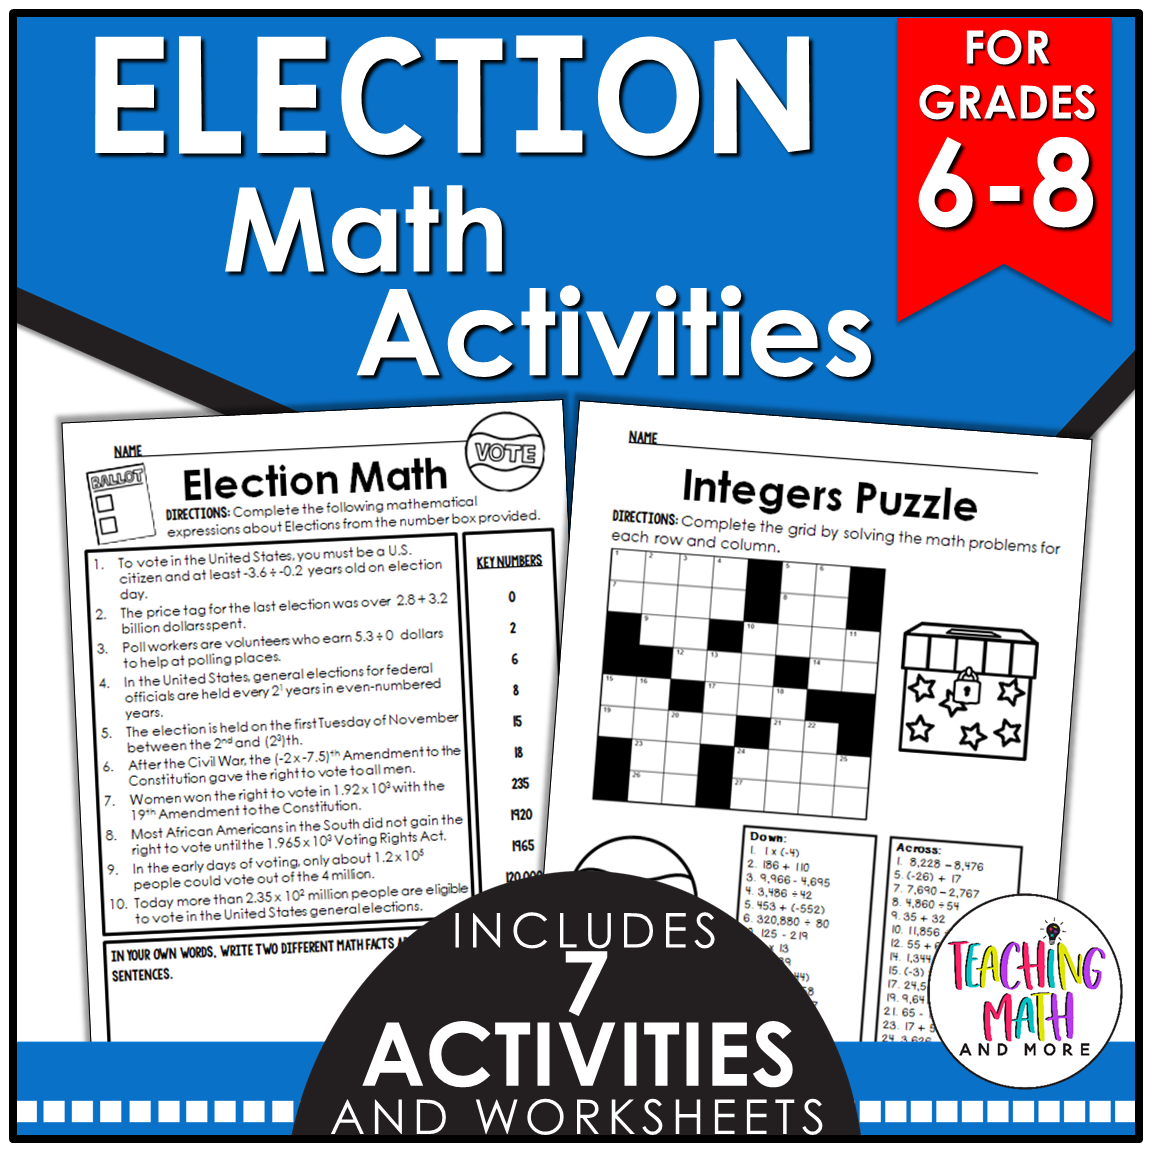 hight resolution of Kelly McCown: Election Day Math Worksheets for Middle School